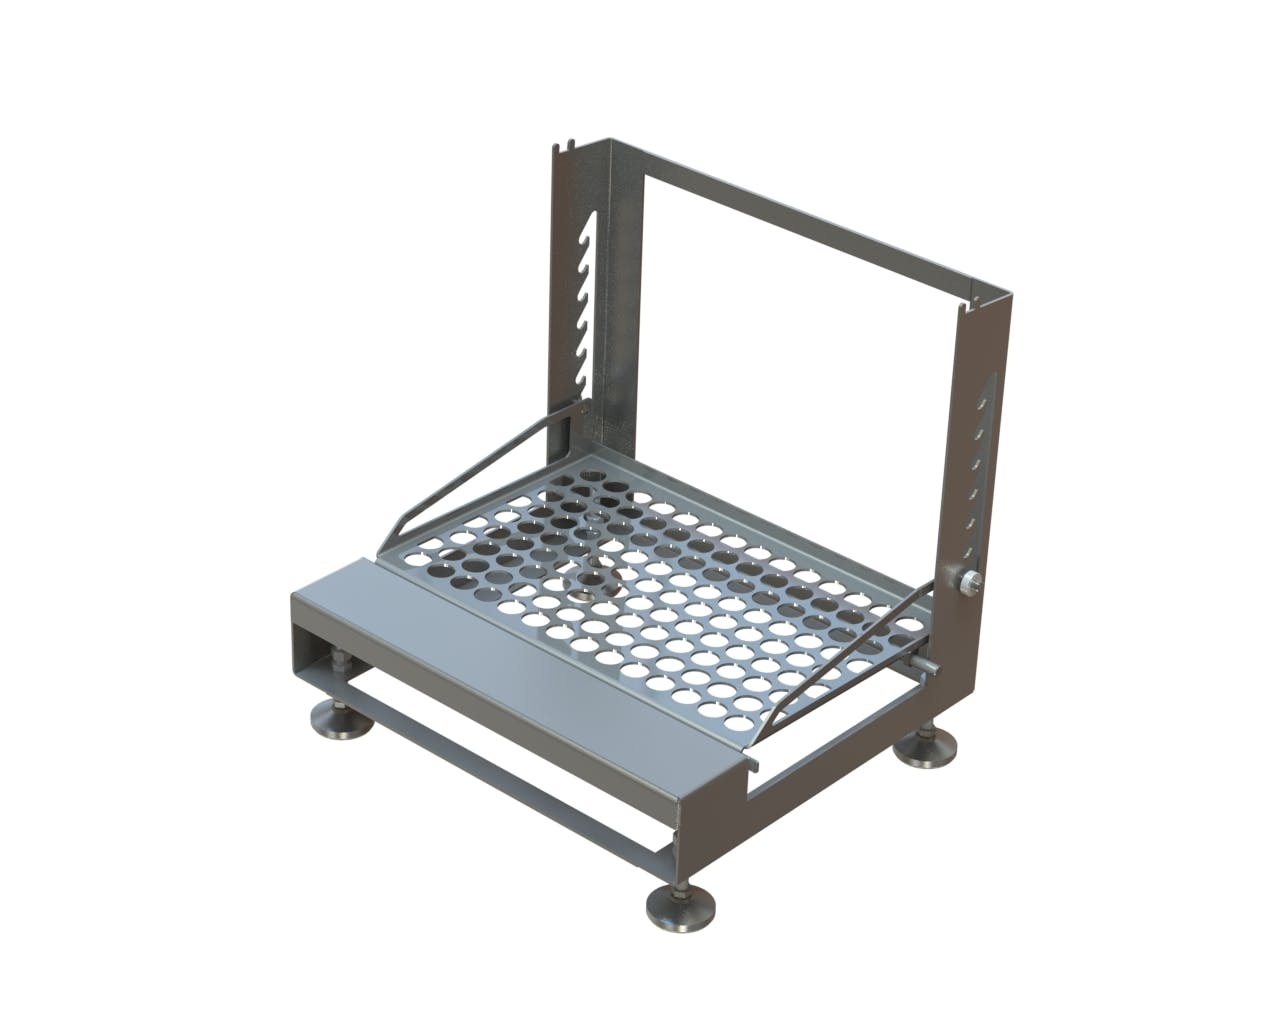 ERG-300 Ergonomic Stand - ERG-300 Ergonomic Stand - sold by Fusion Tech Integrated Inc.